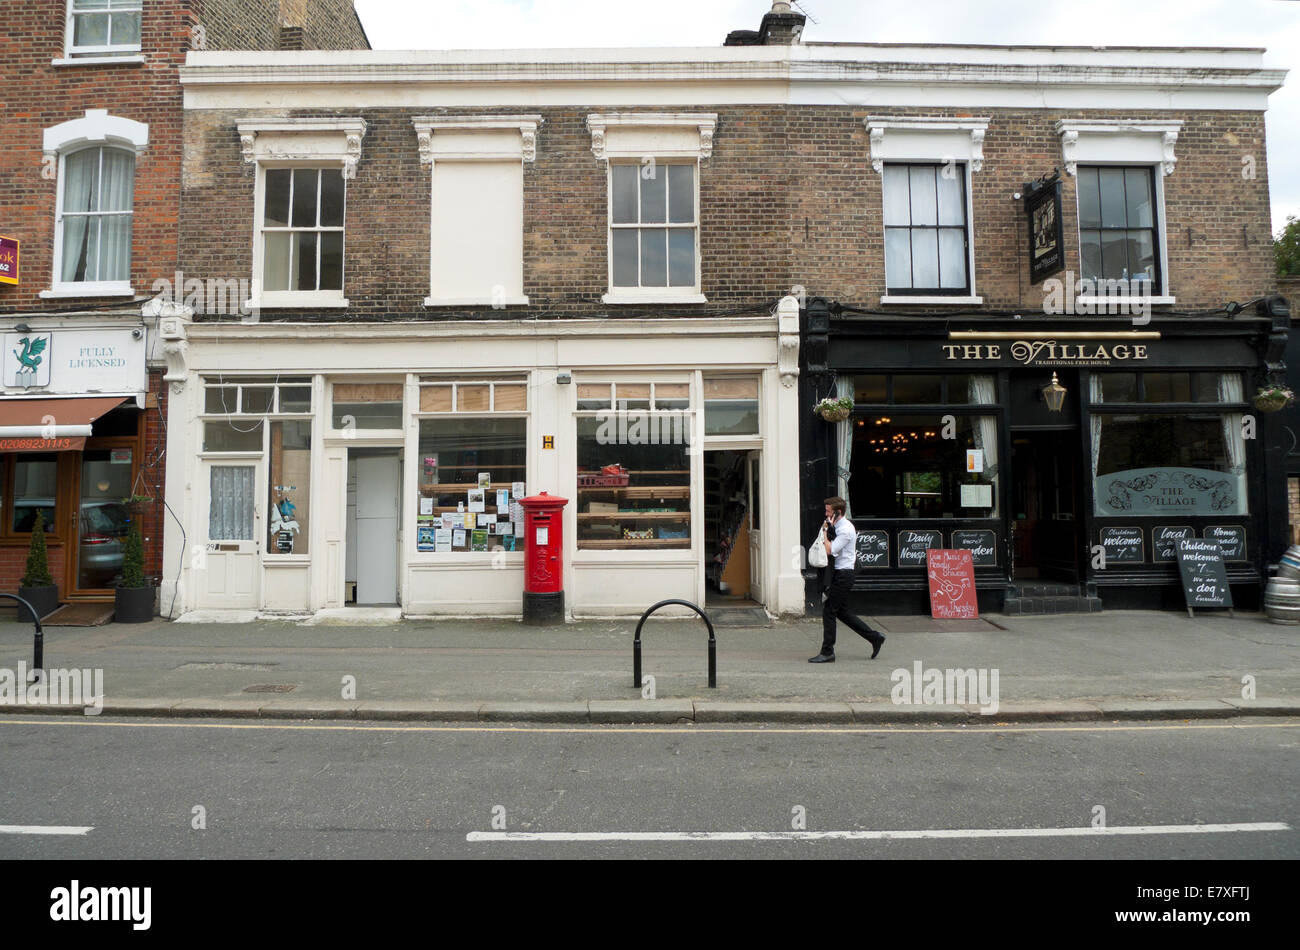 The Village pub and shops on Orford Road in Walthamstow Village, London E17  KATHY DEWITT - Stock Image